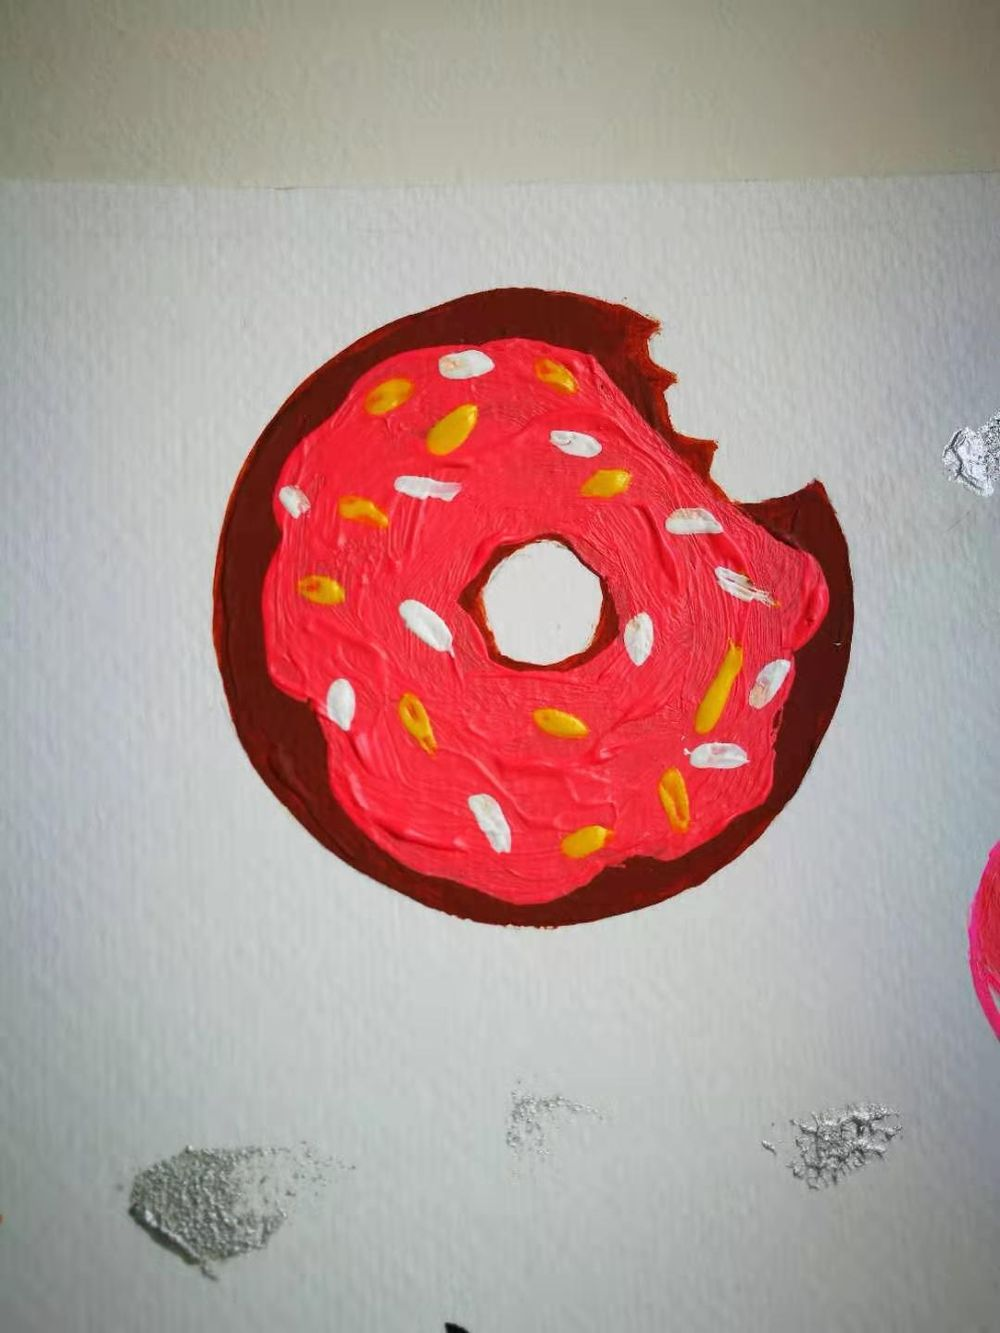 Palm leaf and donut inspired by CatCoq class - image 1 - student project